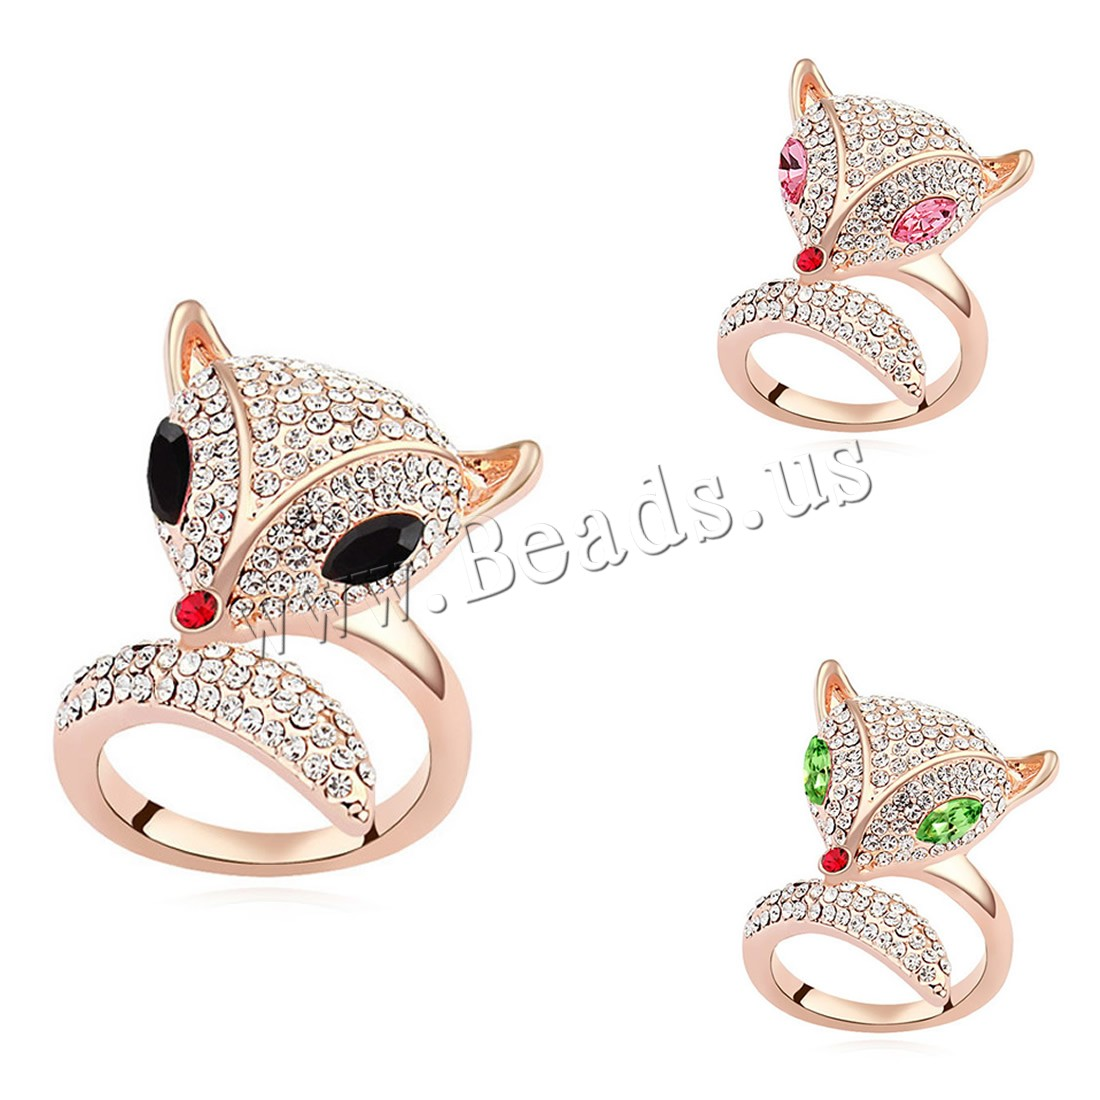 Buy CRYSTALLIZED™ Element Crystal Finger Ring Brass CRYSTALLIZED™ Fox real rose gold plated woman & faceted colors choice nickel lead & cadmium free 16mm US Ring Size:6-9 Sold PC